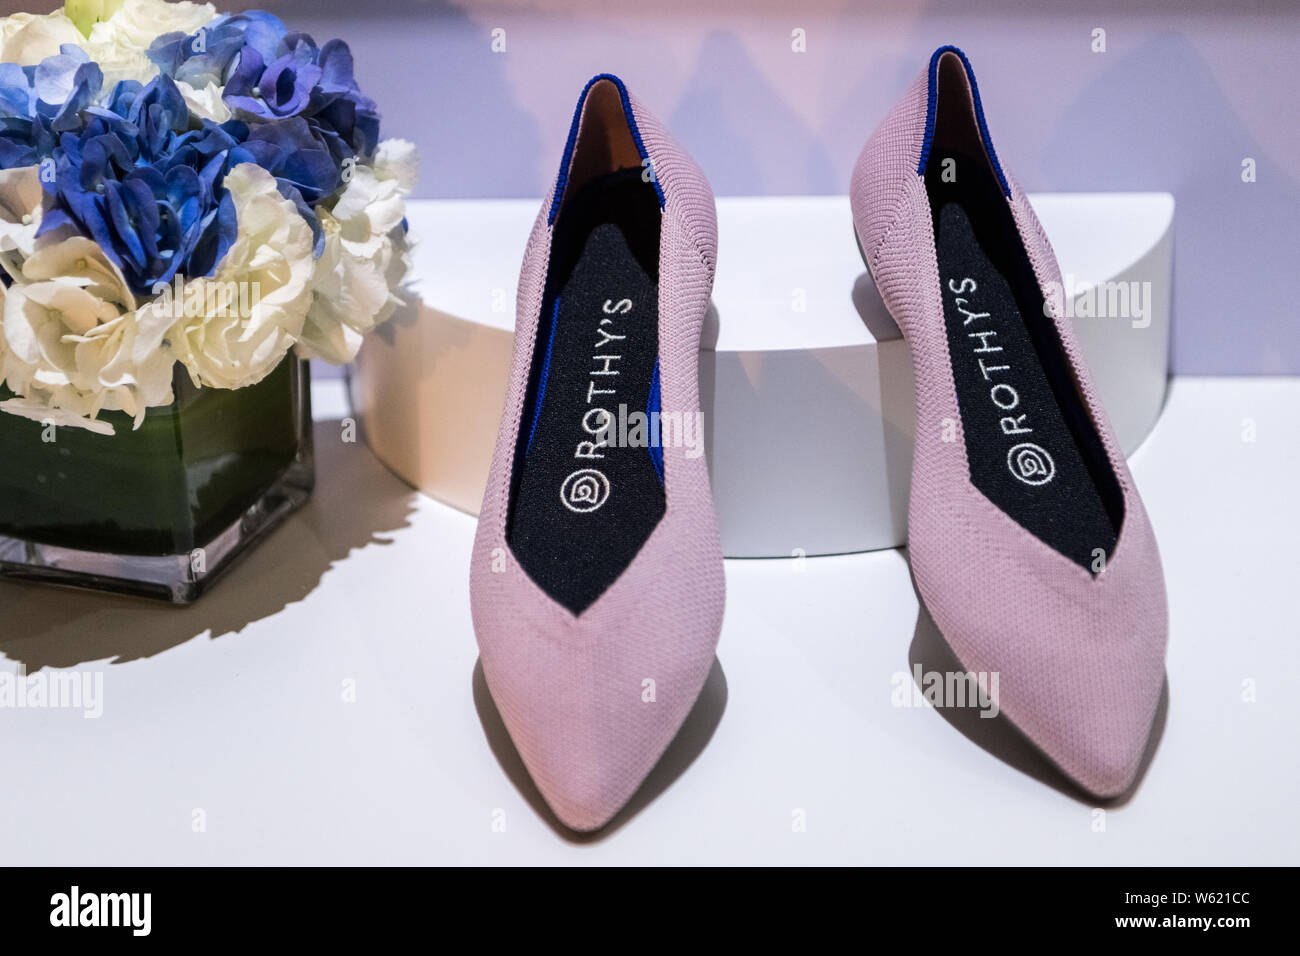 A pair of new shoes is displayed at the